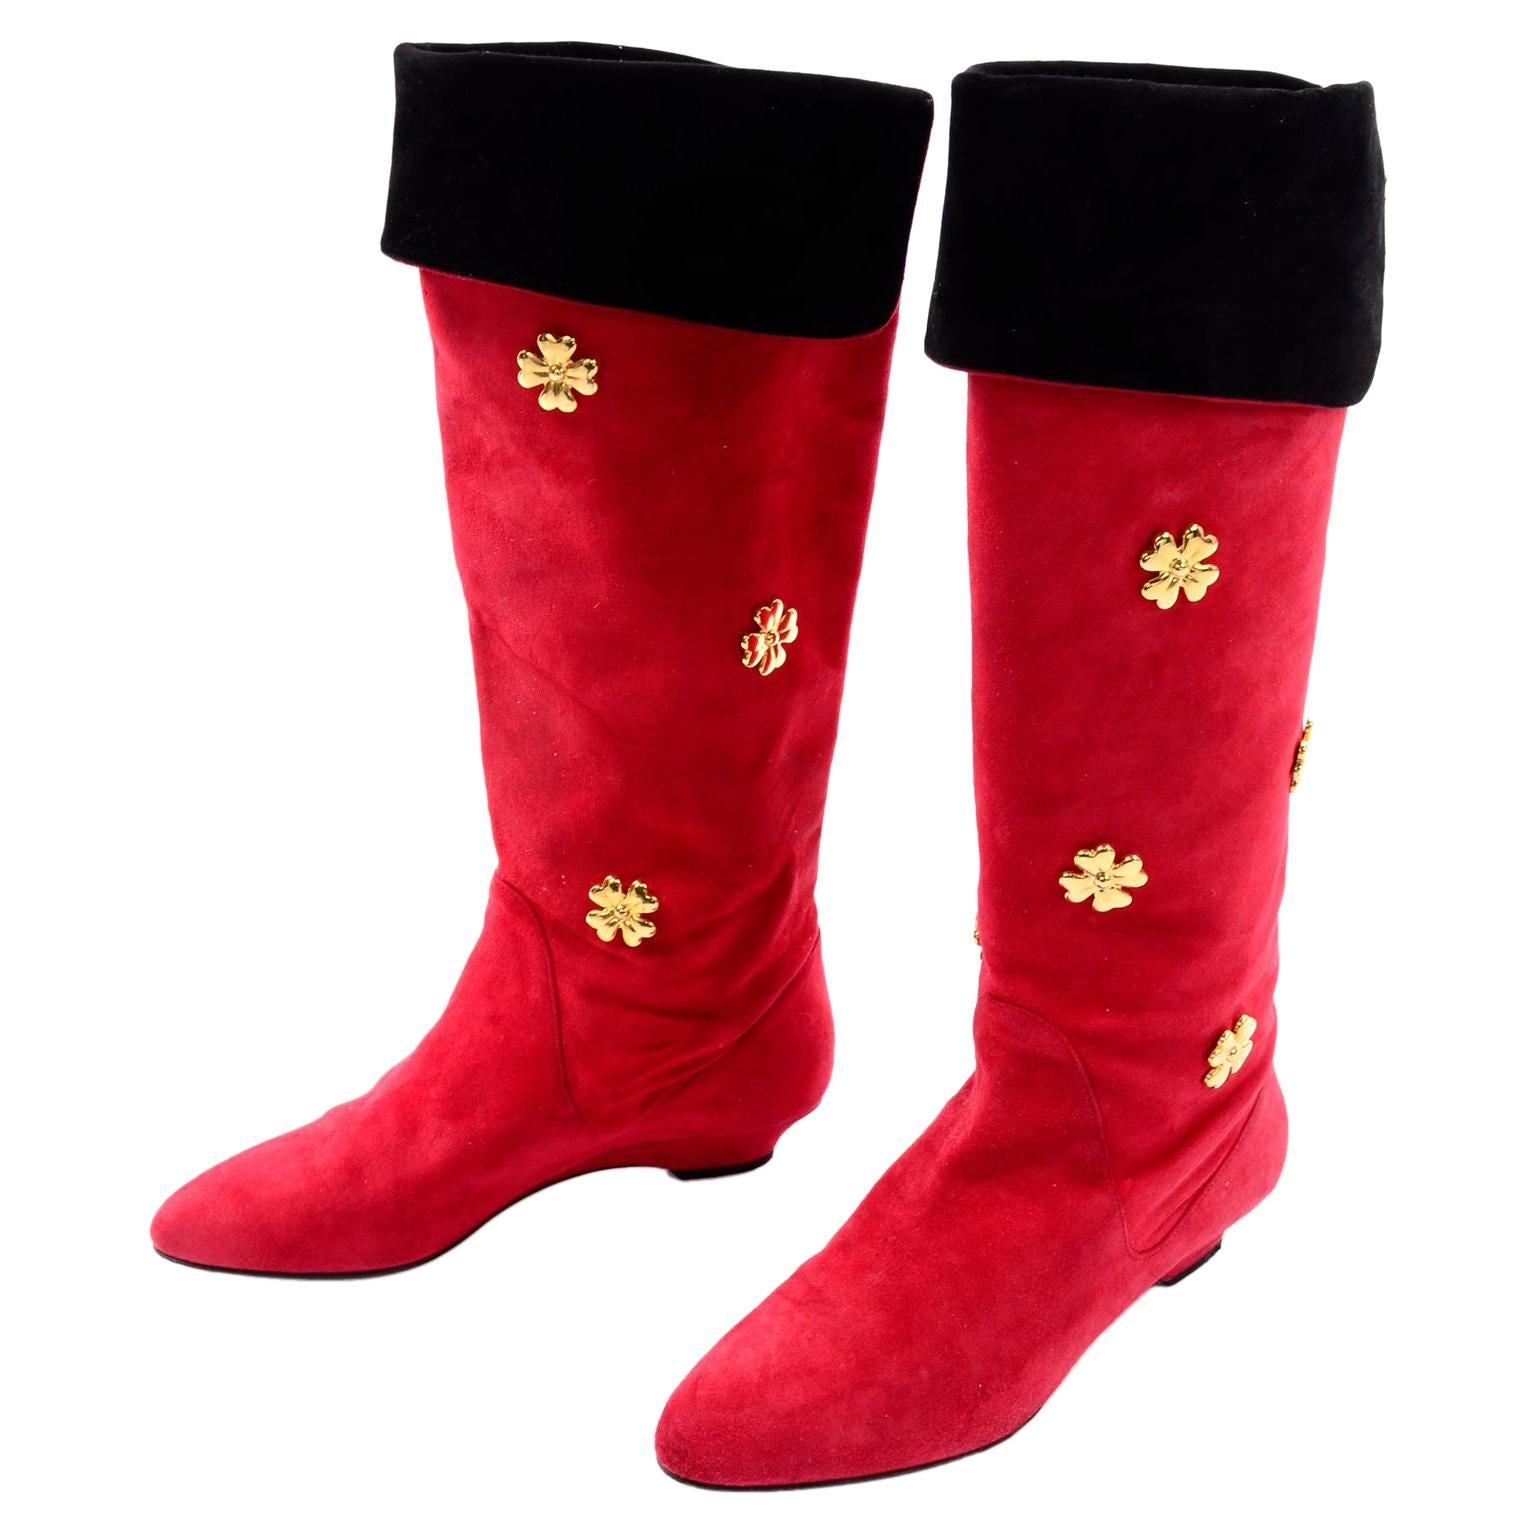 Vintage 1980s Escada Red Suede Boots With Gold Metal Clovers Size 37